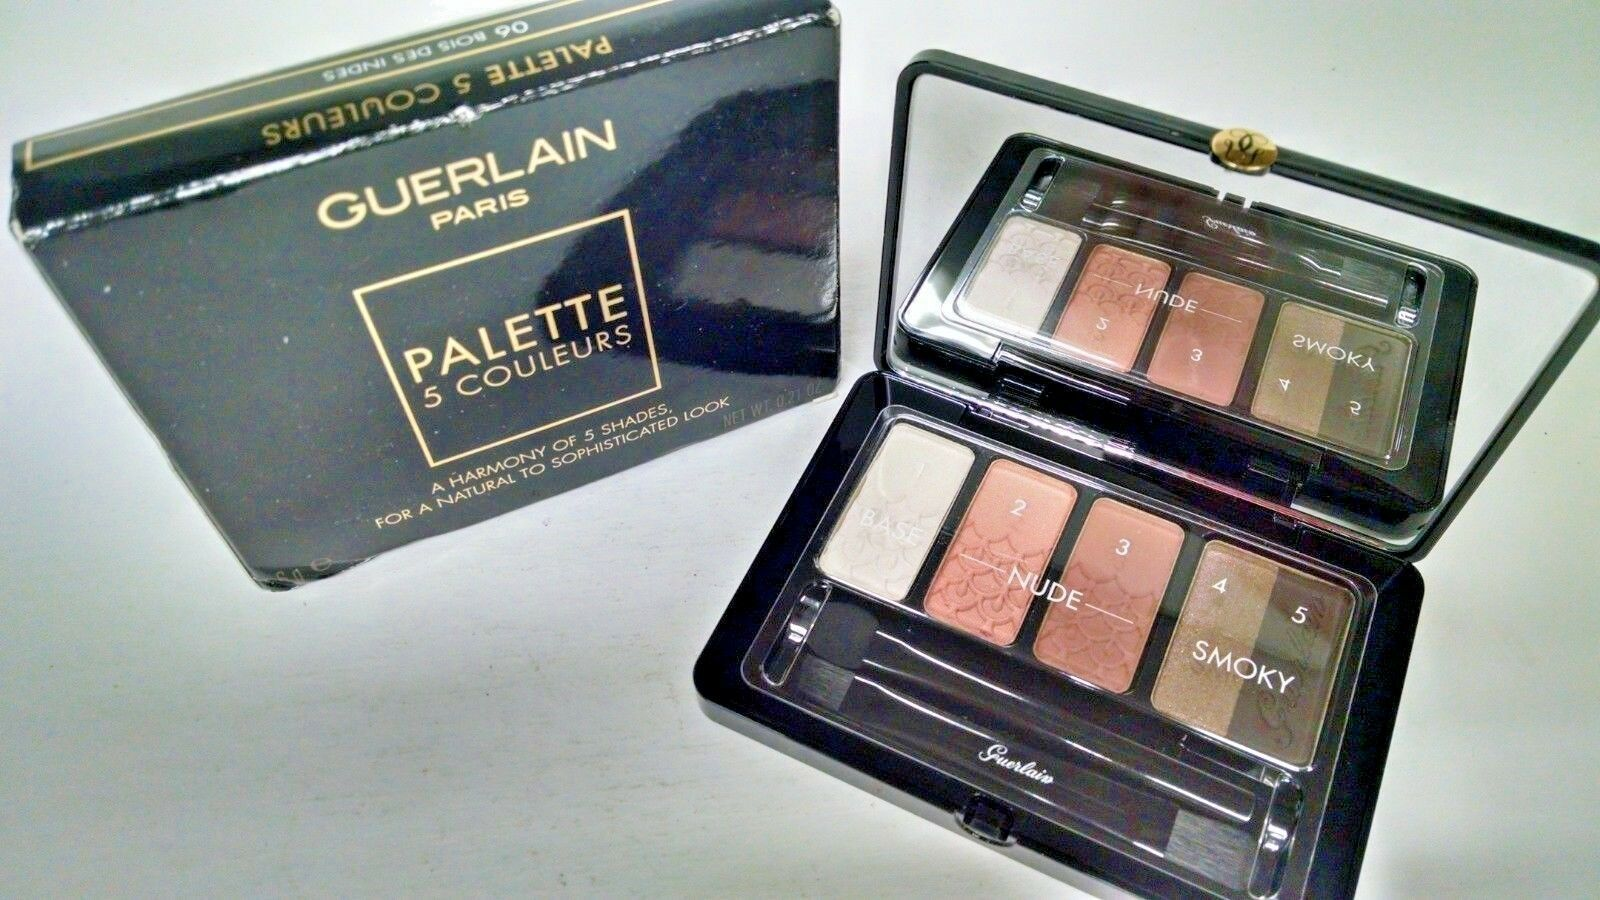 Primary image for Guerlain Palette 5 Couleurs Eyeshadow 06 Bois Des Indes 6 g / 0.21oz New in box